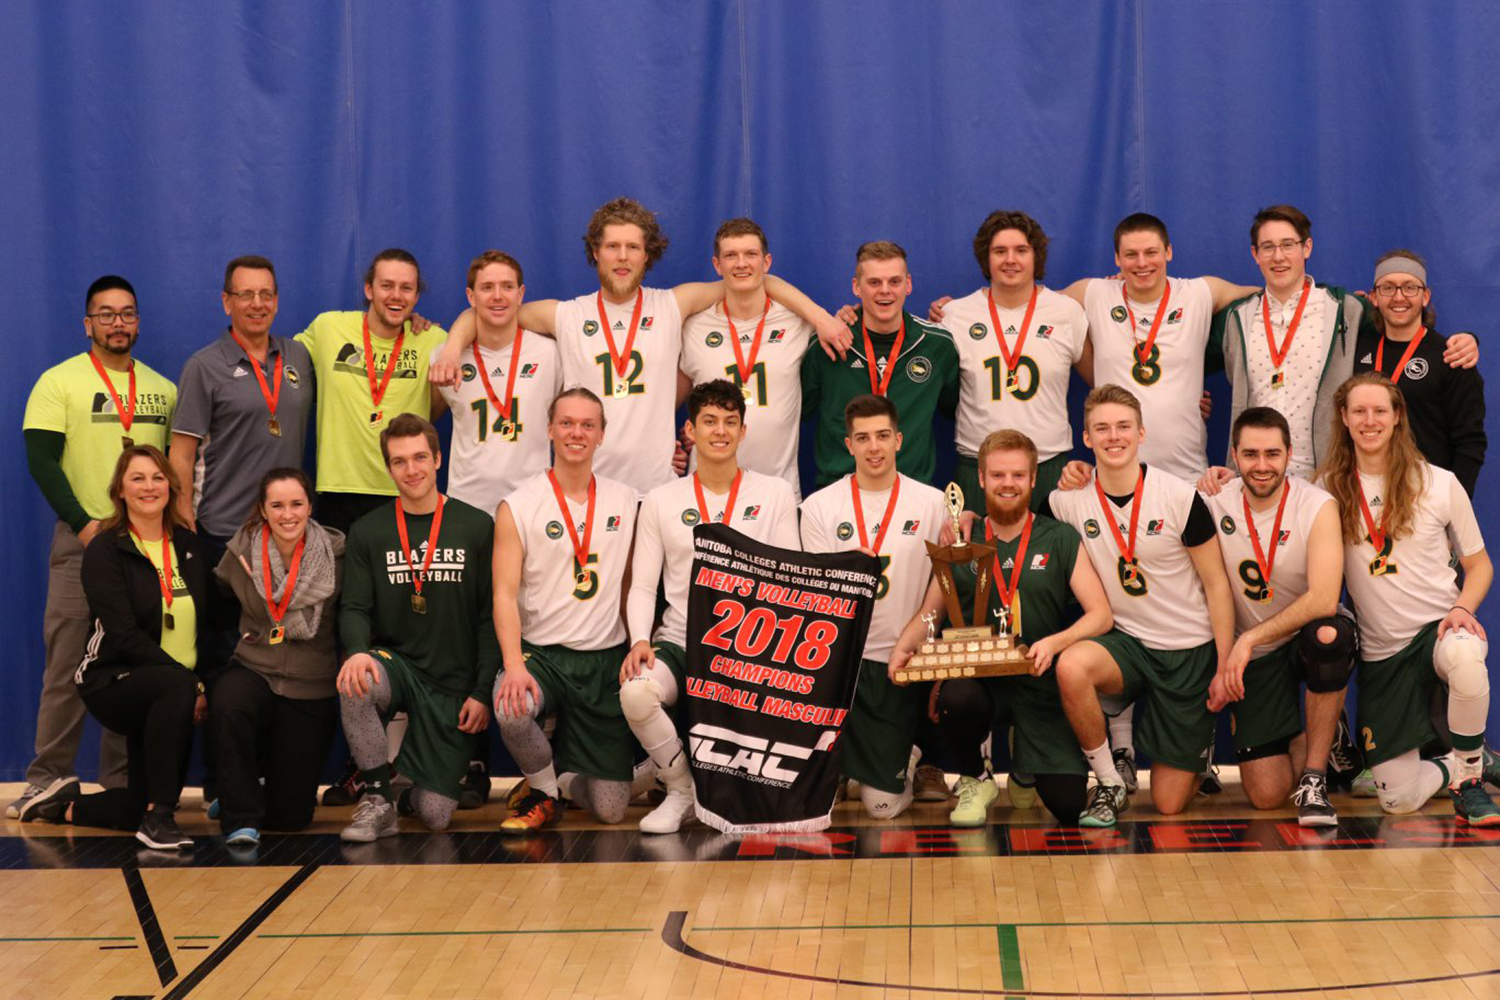 Jason Friesen - The courage to be vulnerable (The CMU mens volleyball team line up for a team photo after winning the MCAC championships for the second year in a row.)